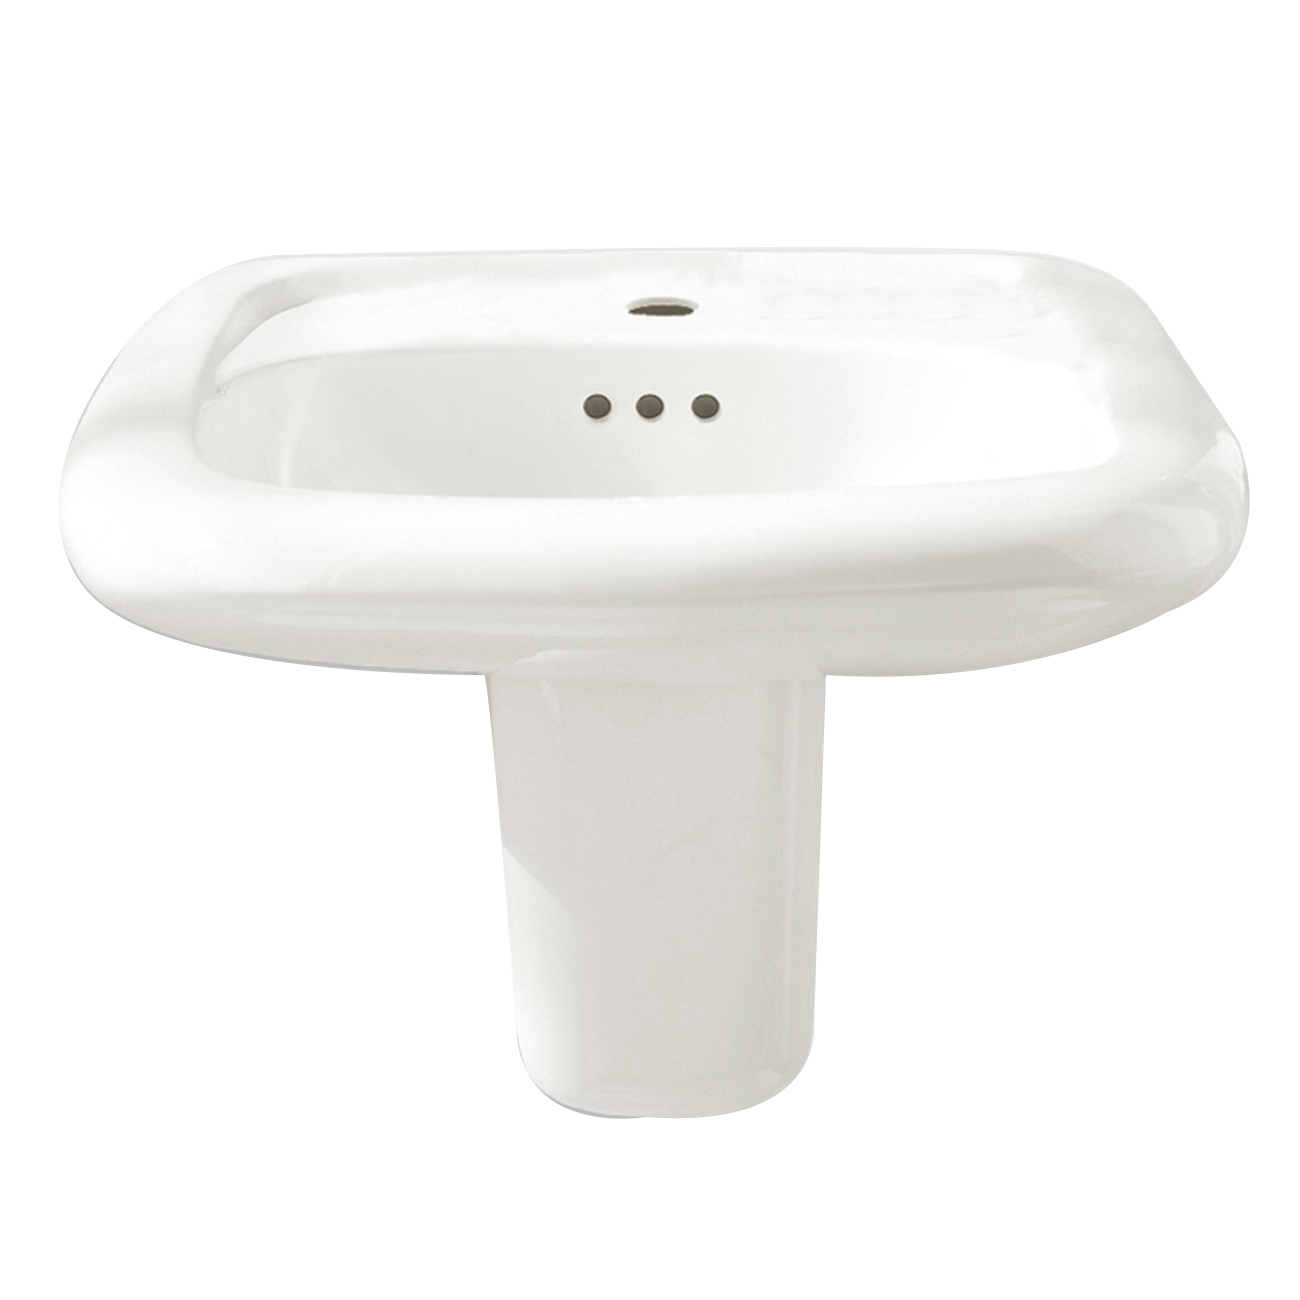 American Standard Murro™ Everclean® 0954.004EC.020 White Vitreous China Wall Mount Lavatory Sink, 1-Bowl, 3-Faucet Holes